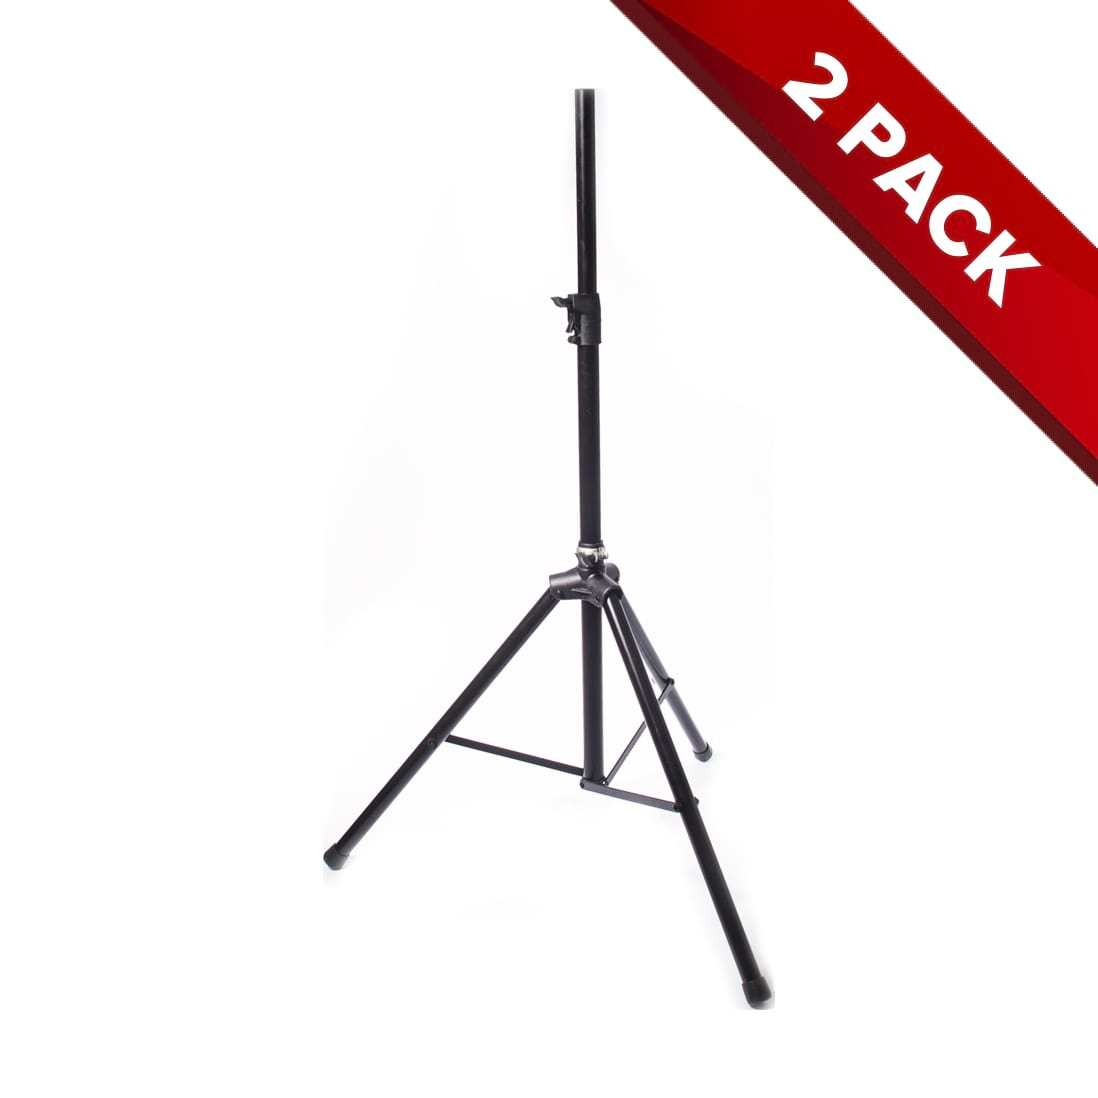 2x Heavy Duty Steel PA / DJ Speaker Stand - Auto-Locking - Air Cushion